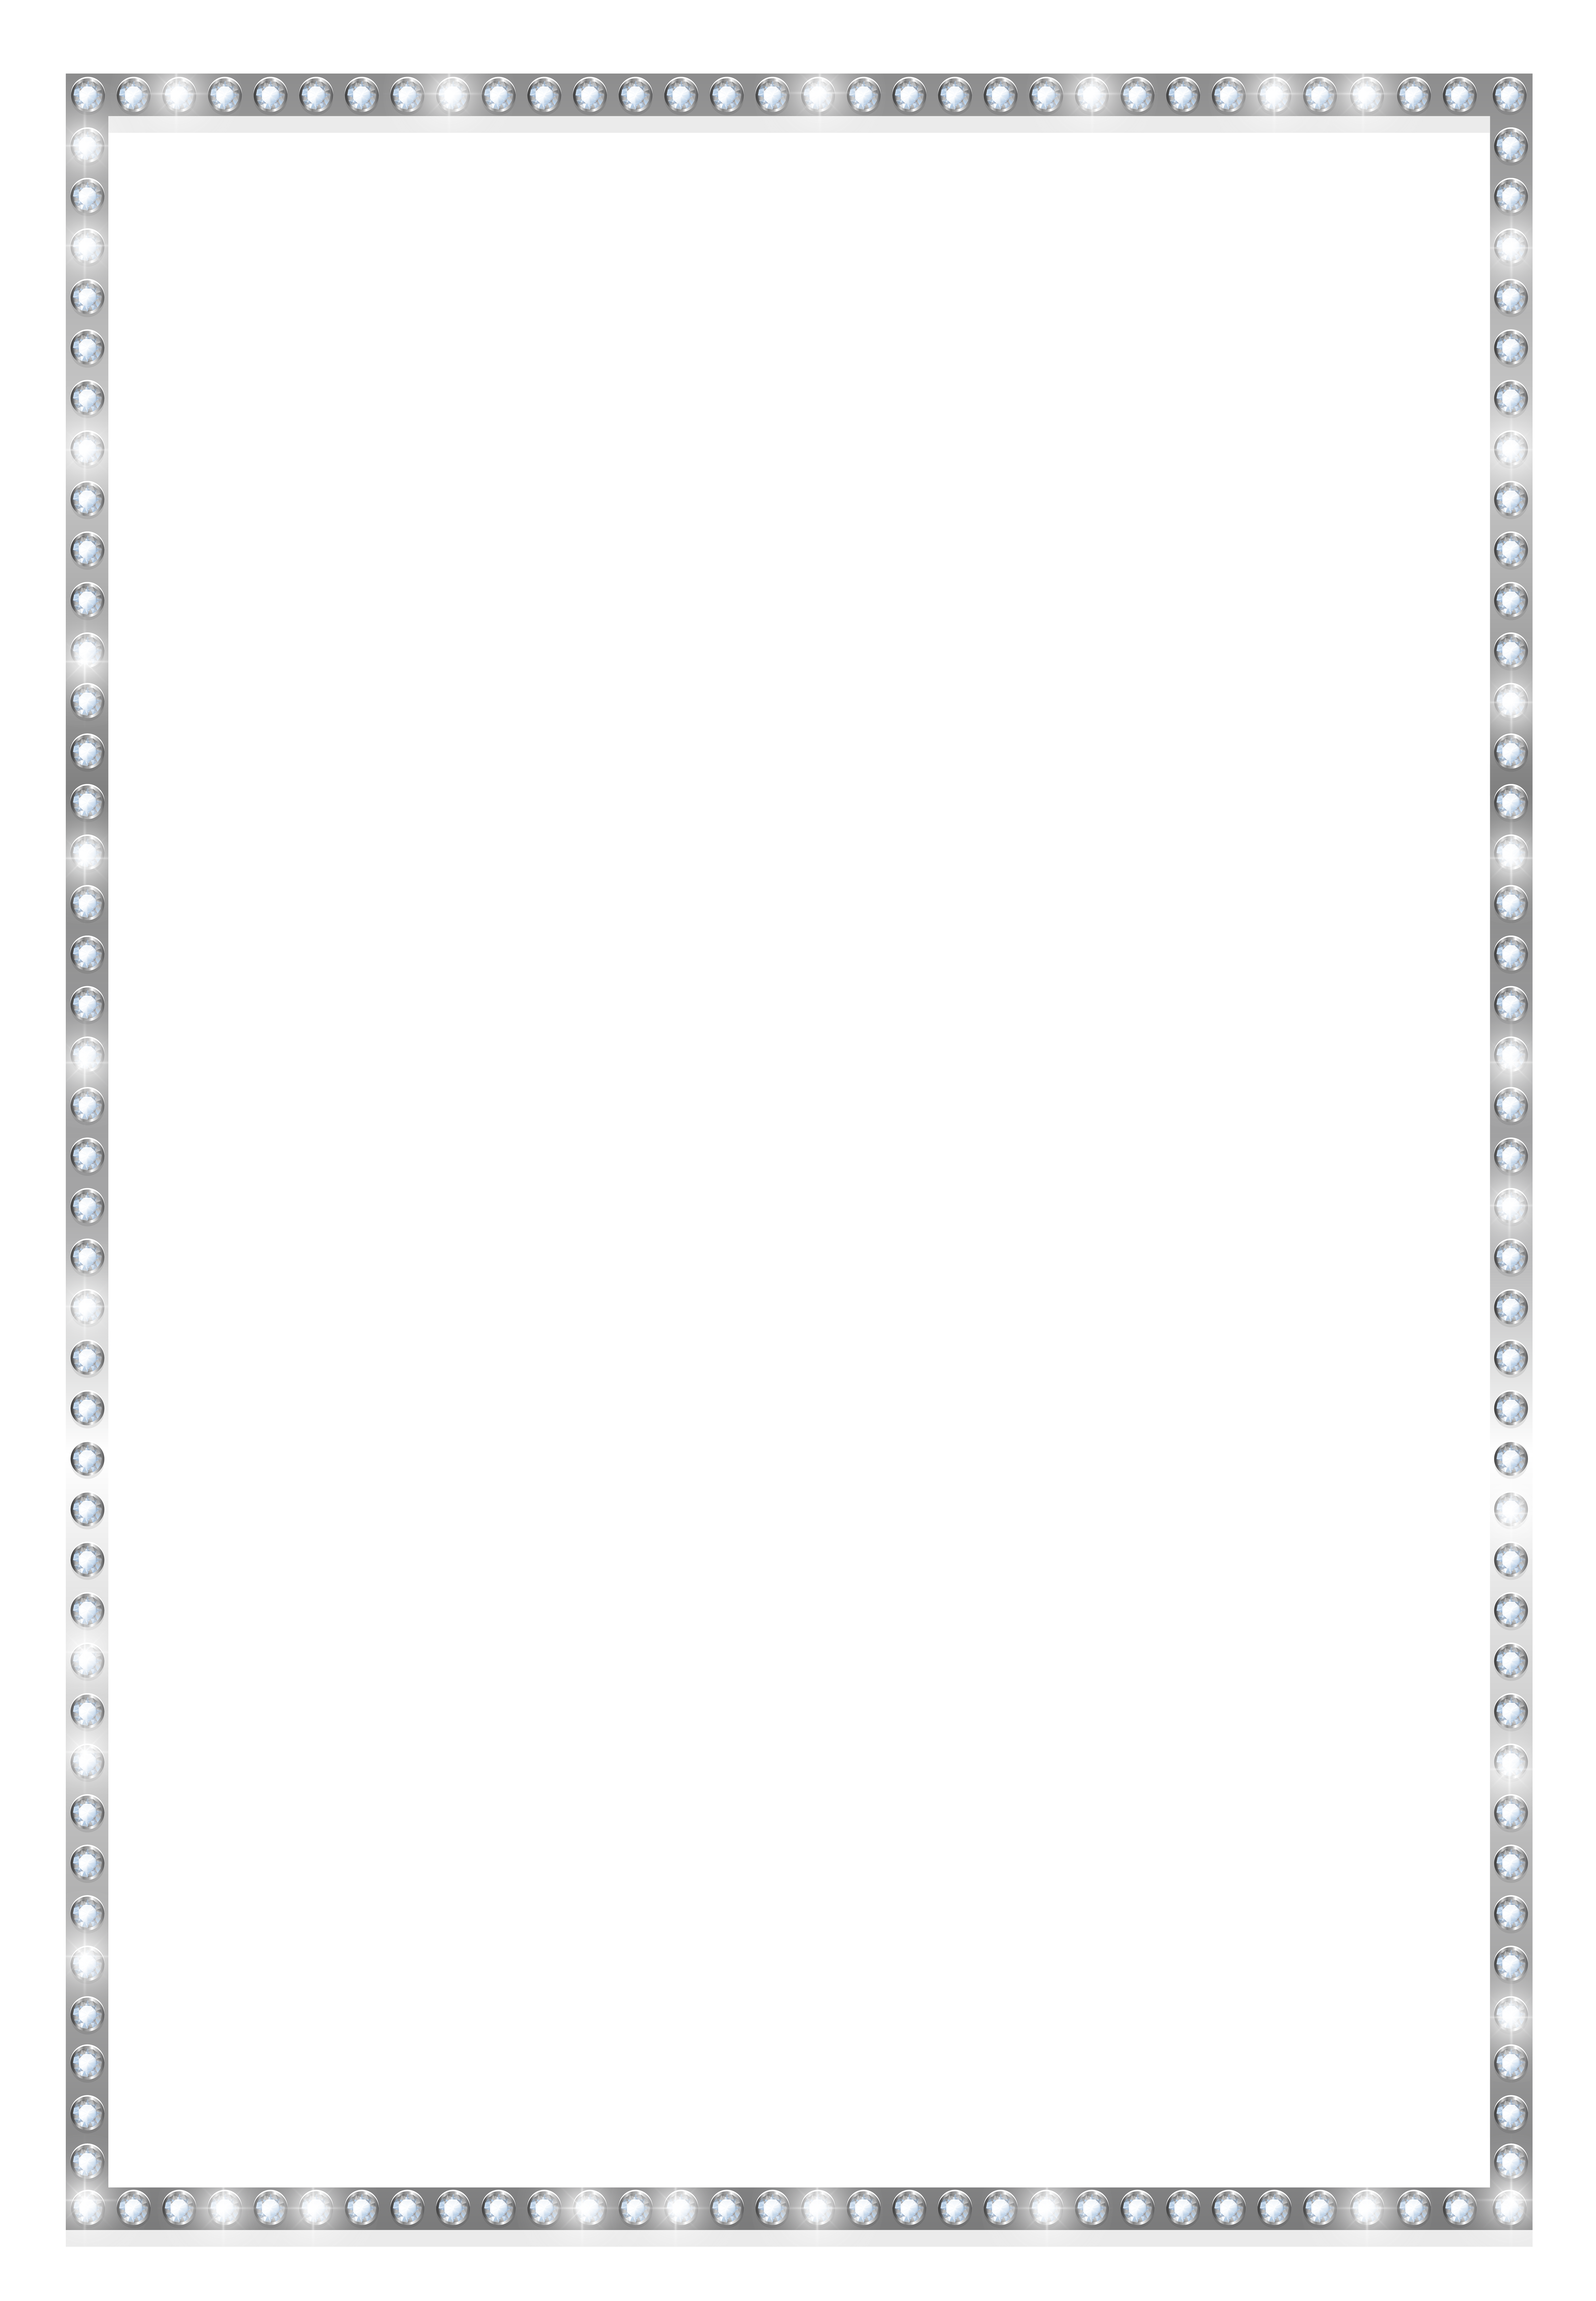 White png border. Silver frame with crystals